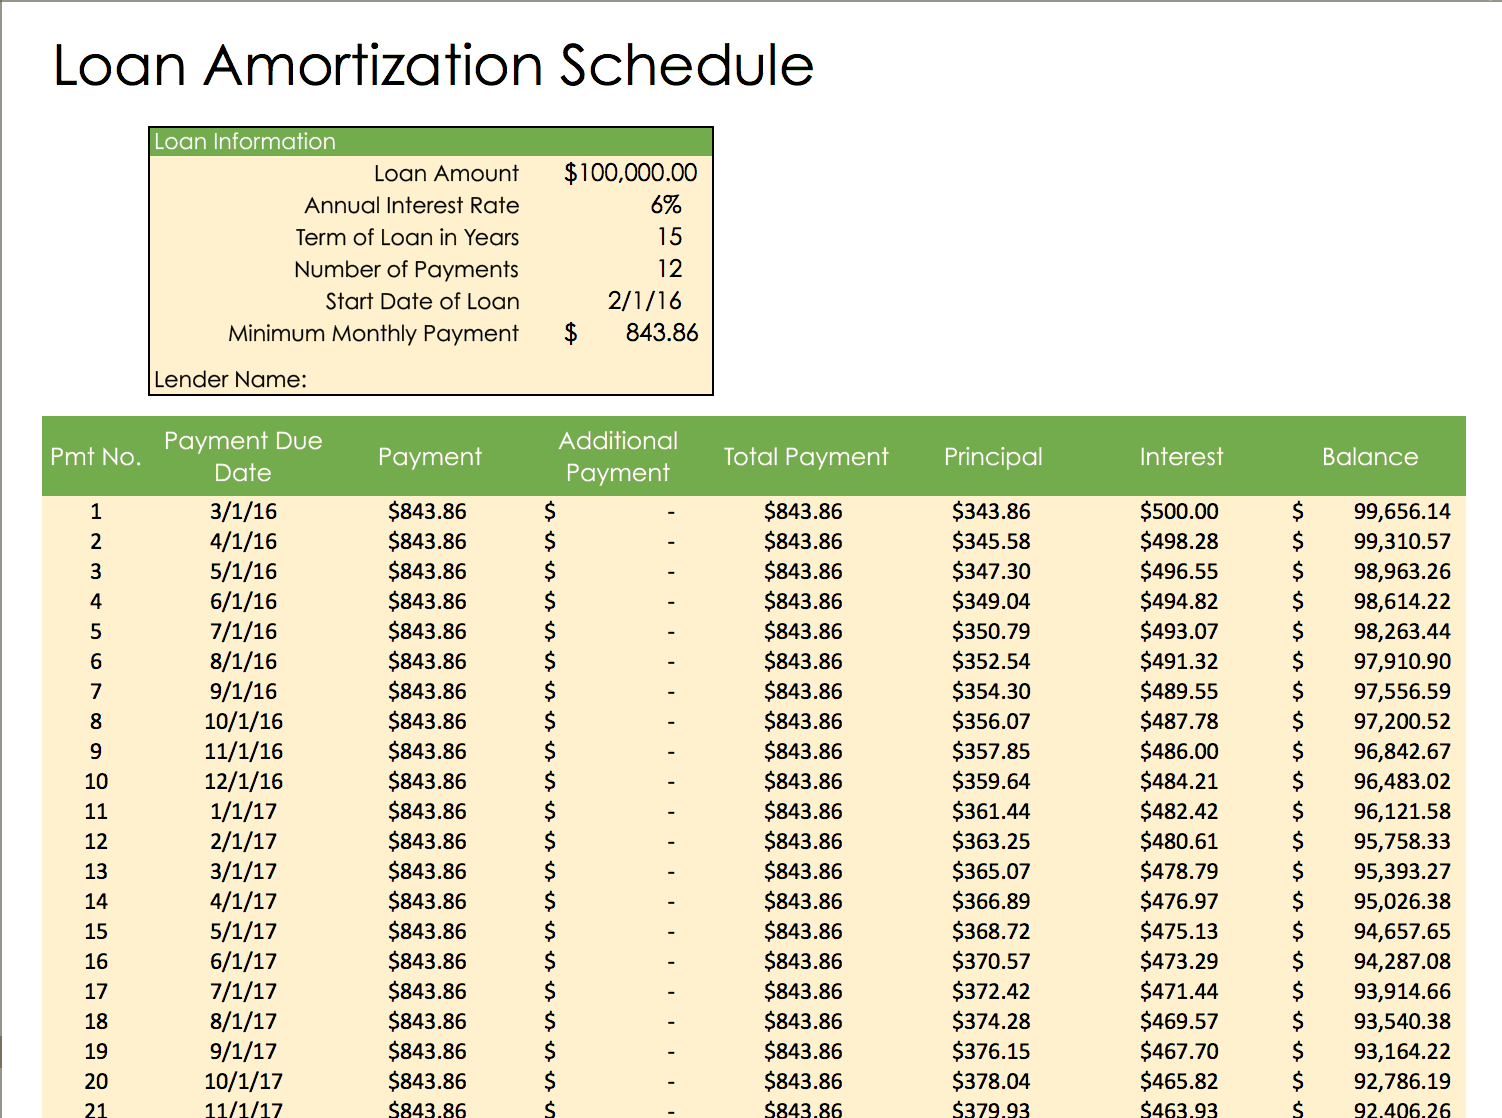 Free weekly schedule templates for excel smartsheet loan amortization schedule template alramifo Gallery